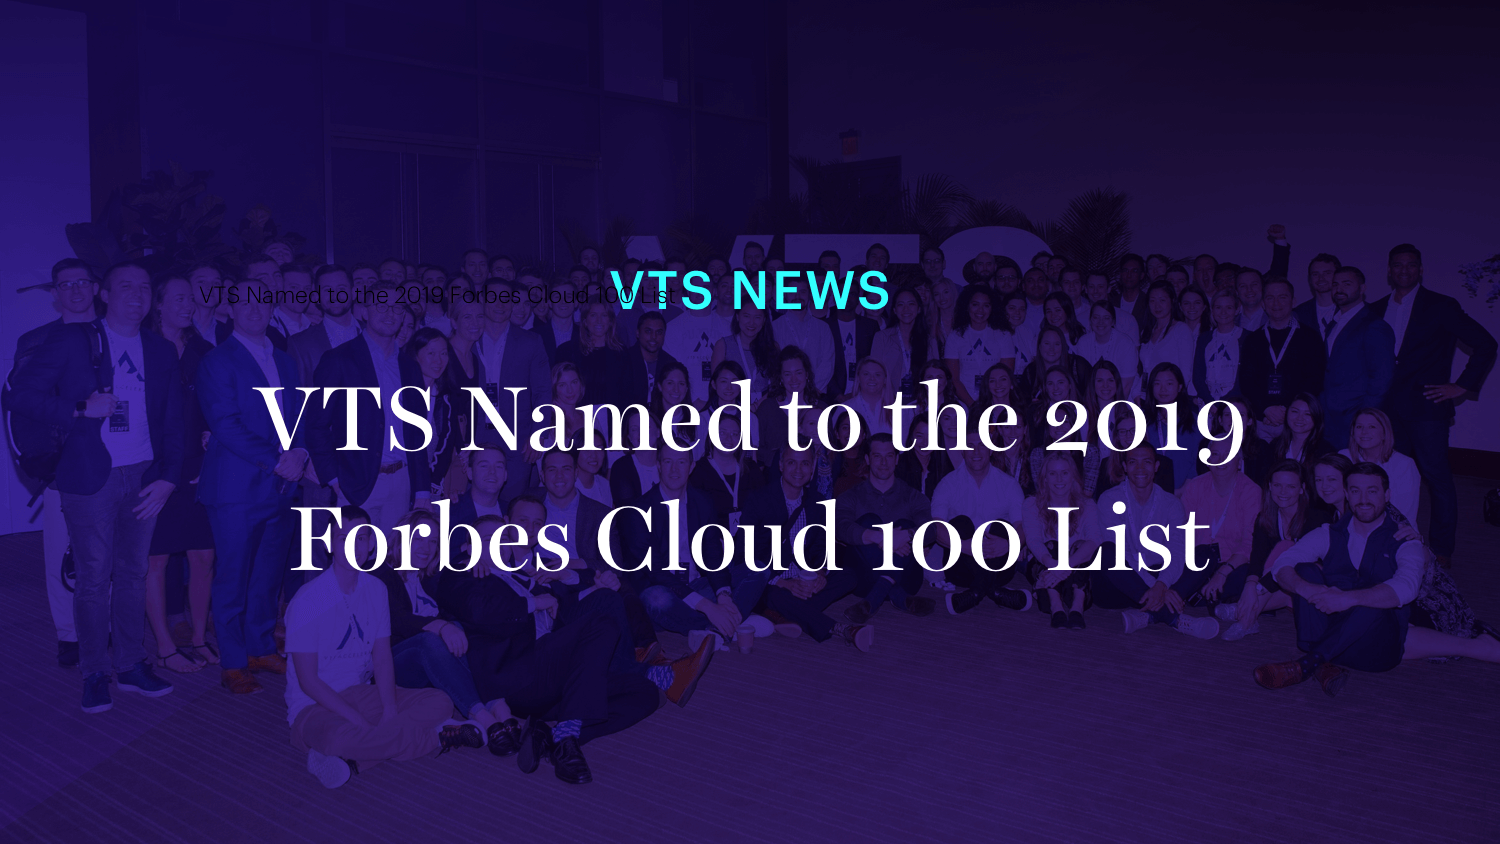 VTS Named to the 2019 Forbes Cloud 100 List